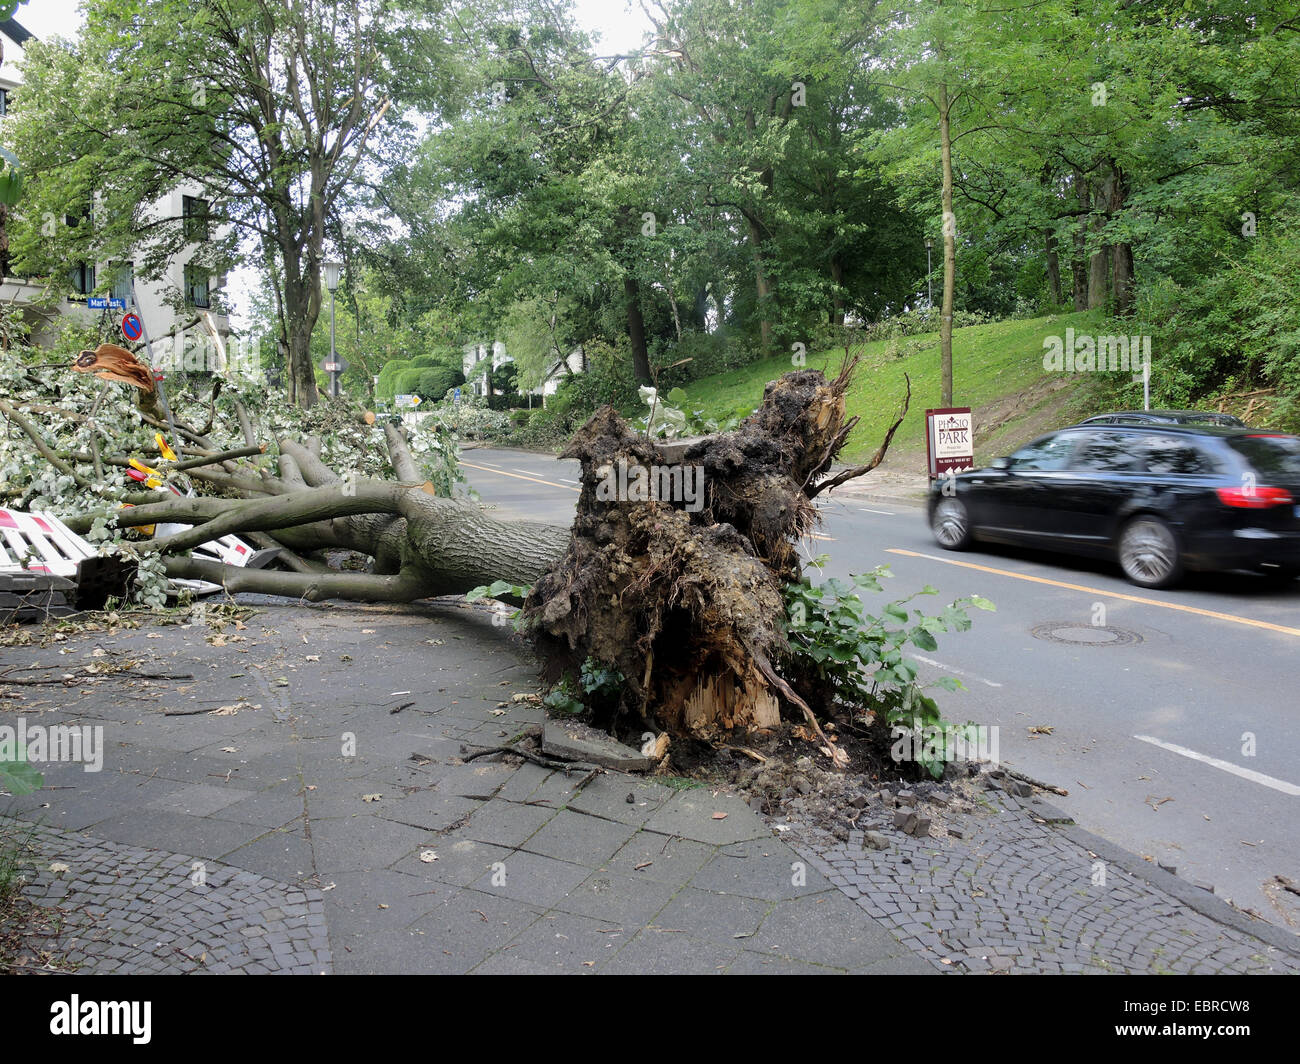 basswood, linden, lime tree (Tilia spec.), fallen lime tree blocking a street, damages by storm front Ela at 2014 - Stock Image